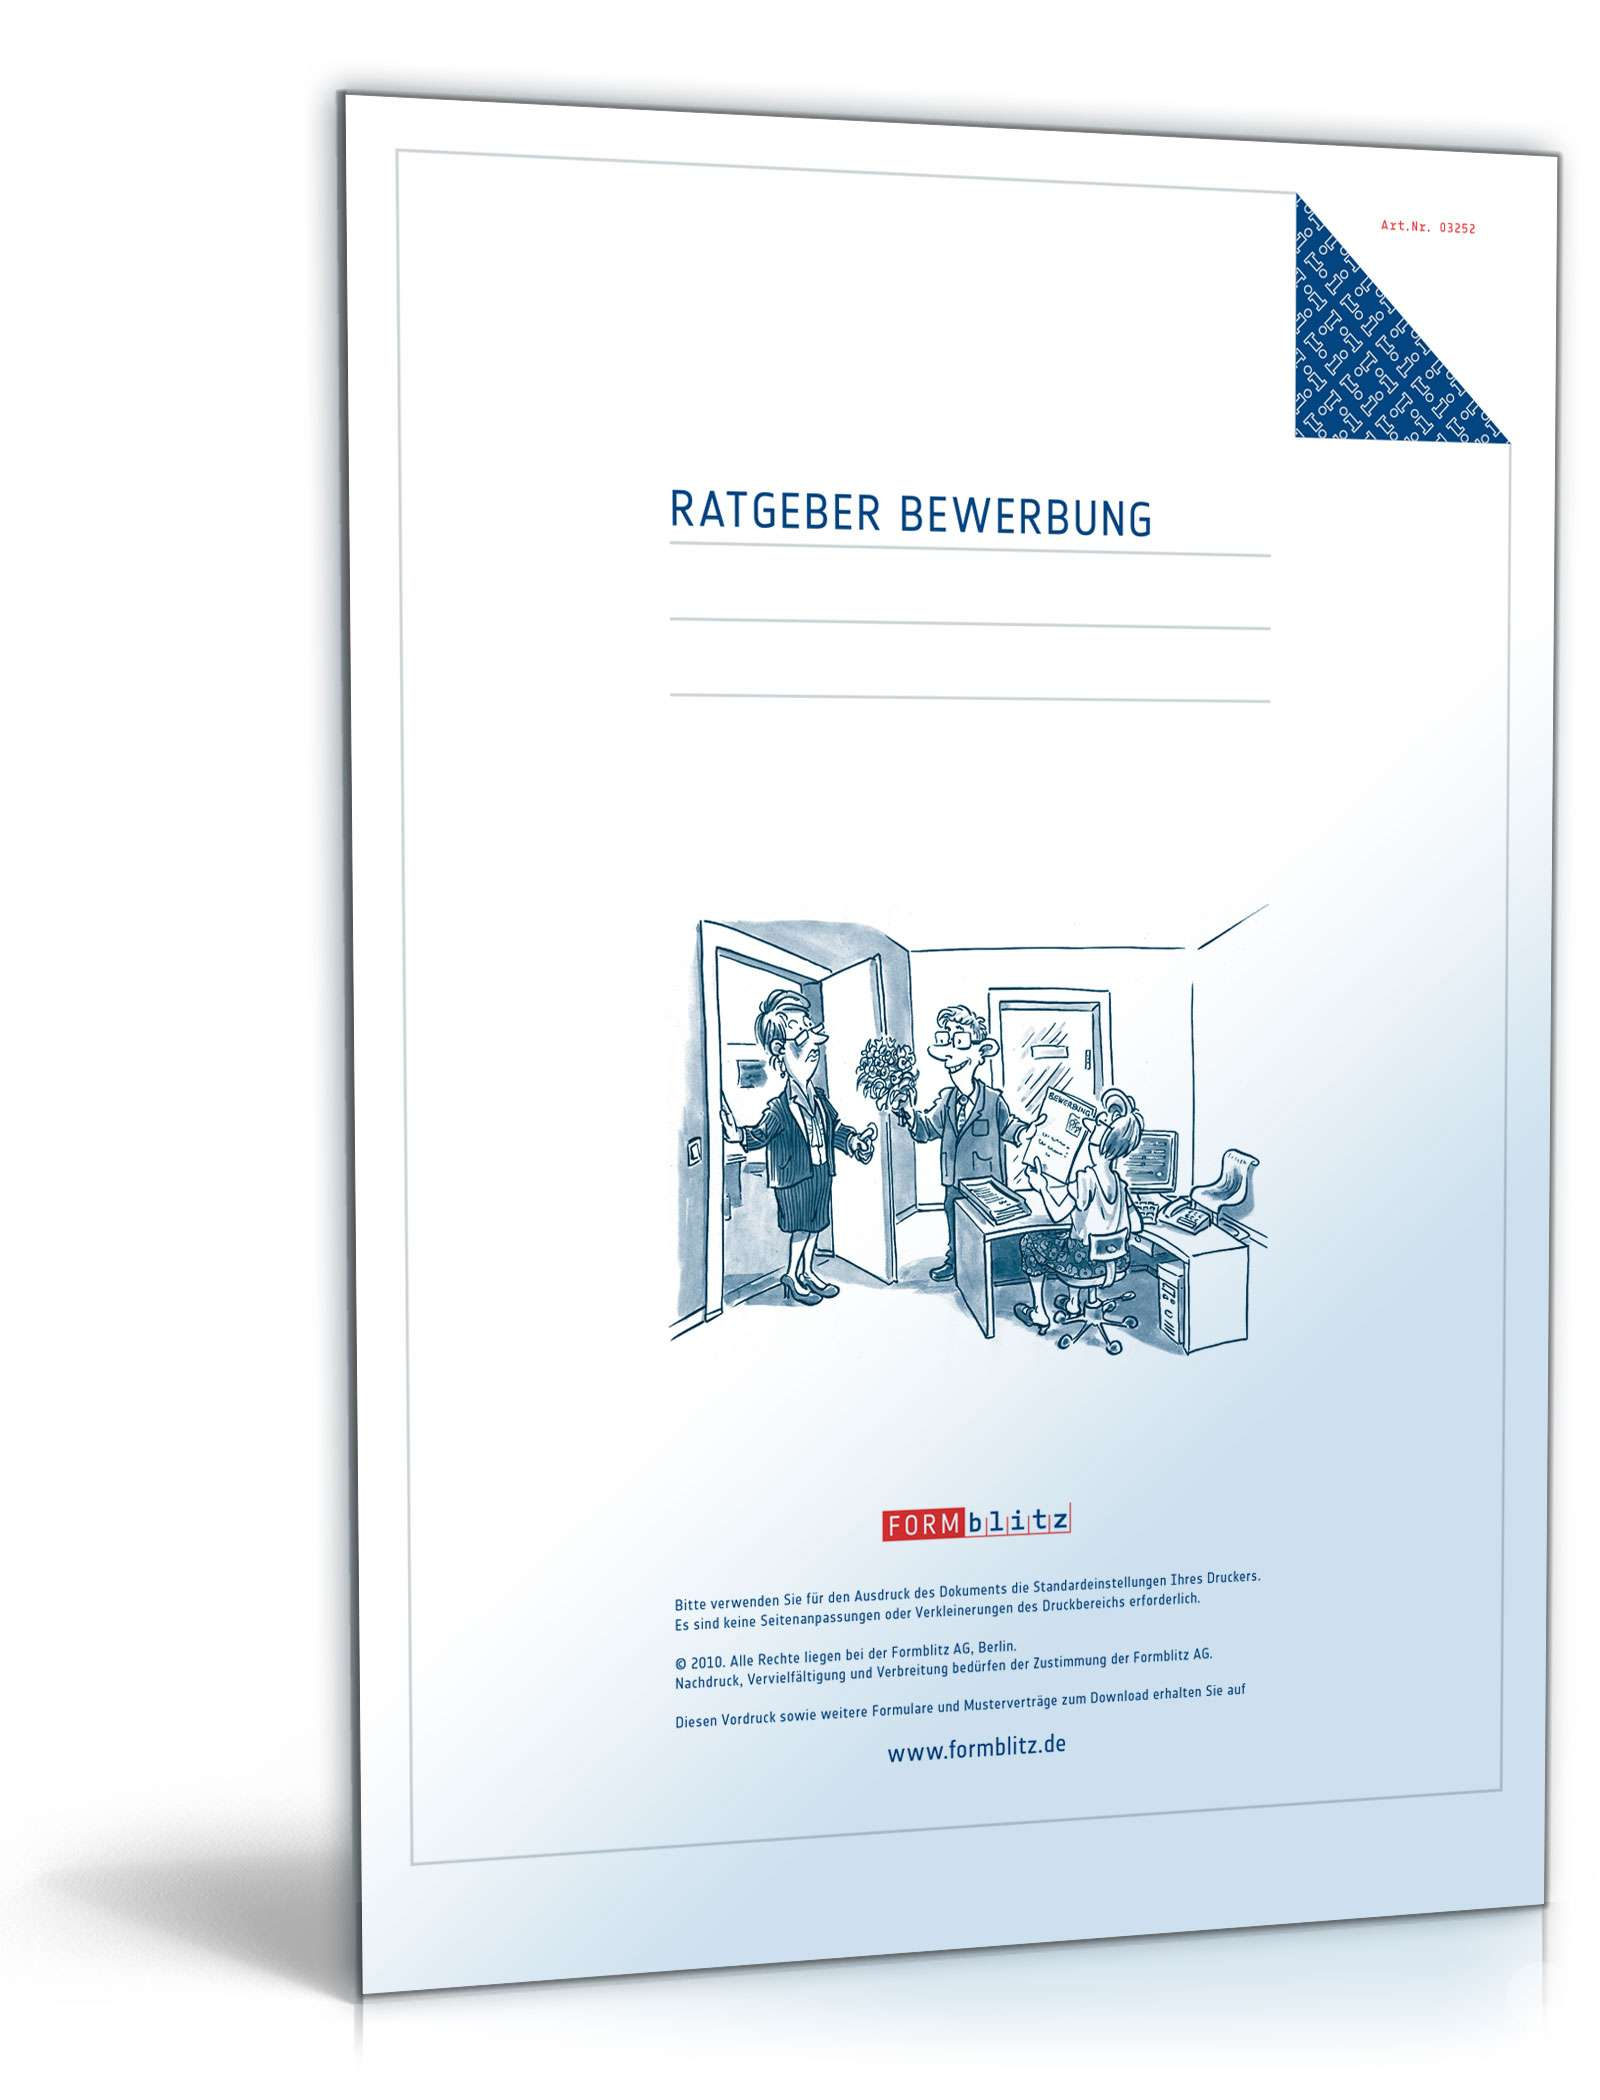 Fantastisch Kfz Techniker Lebenslauf Pdf Bilder - Entry Level Resume ...